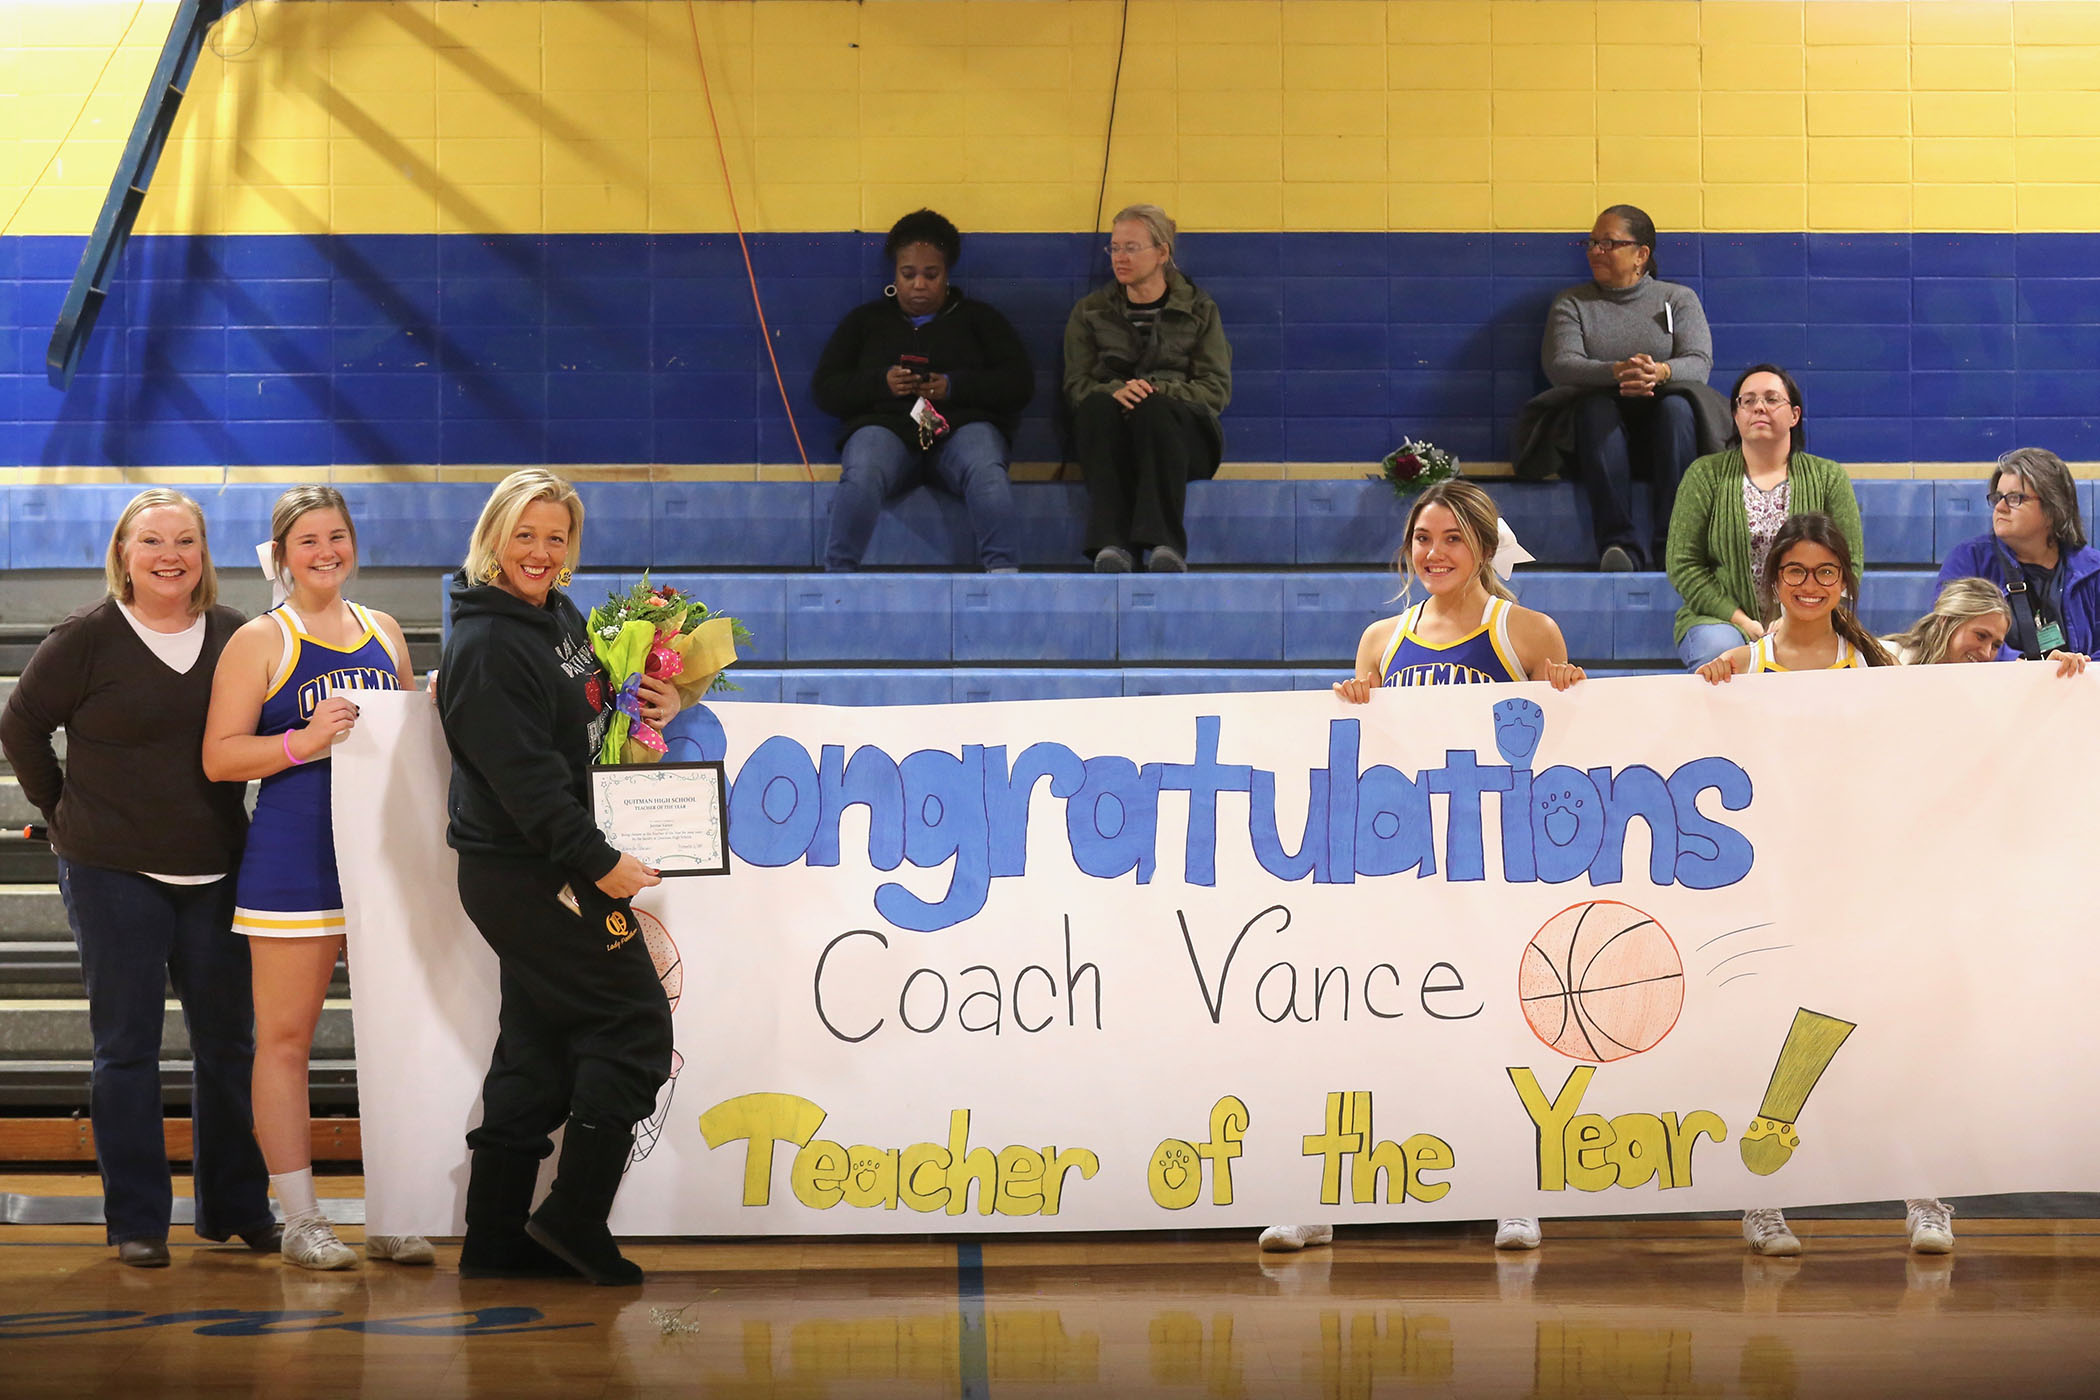 Coach Vances poses by her Teacher of the Year sign.